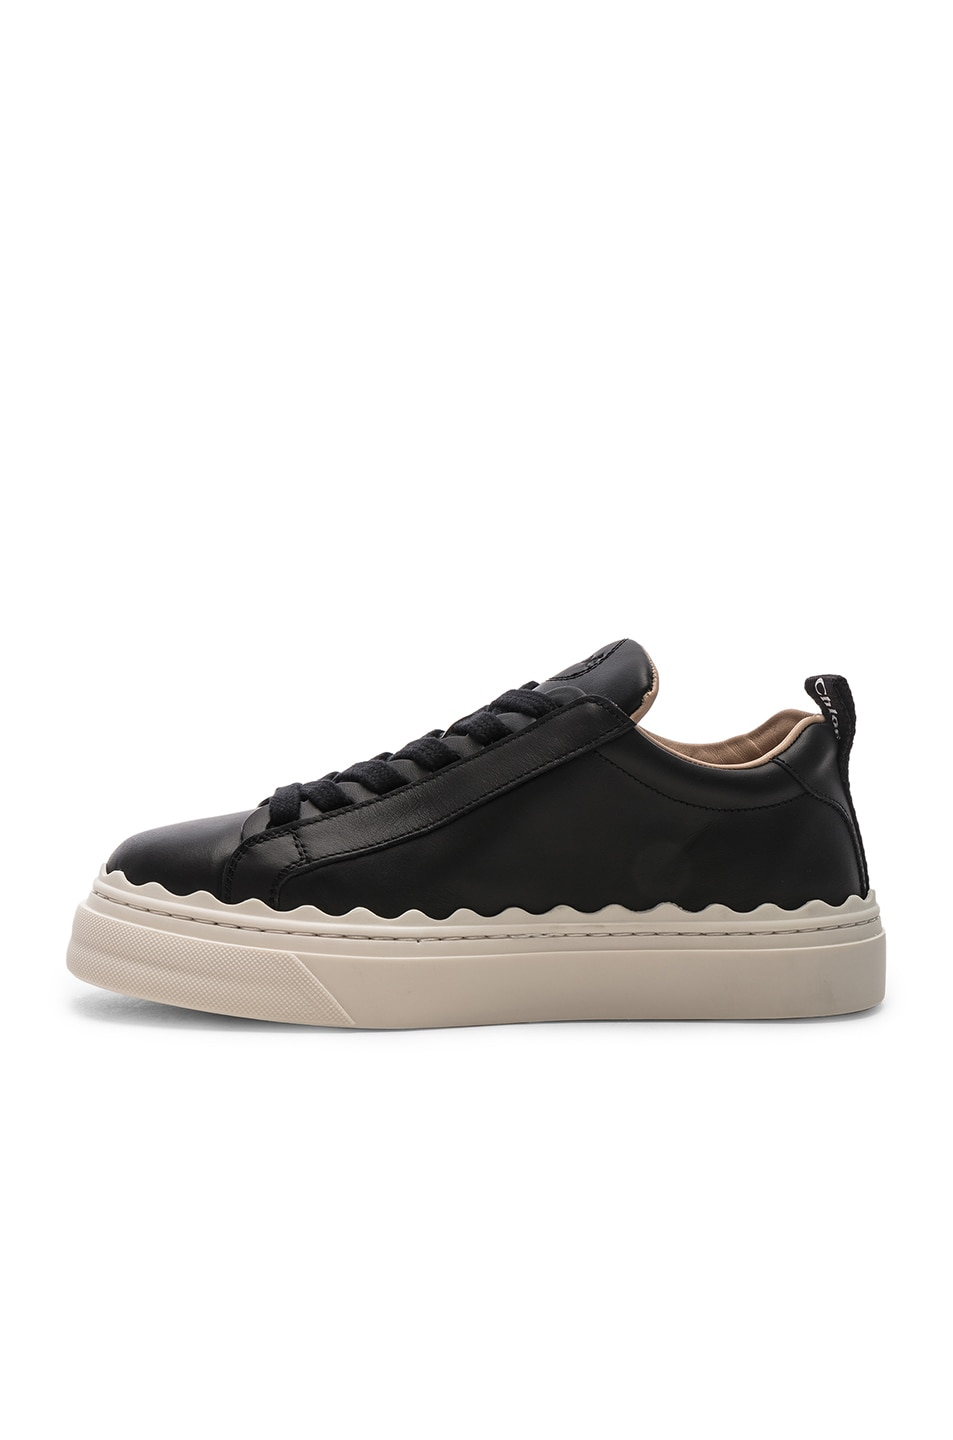 Image 5 of Chloe Low Top Sneakers in Black